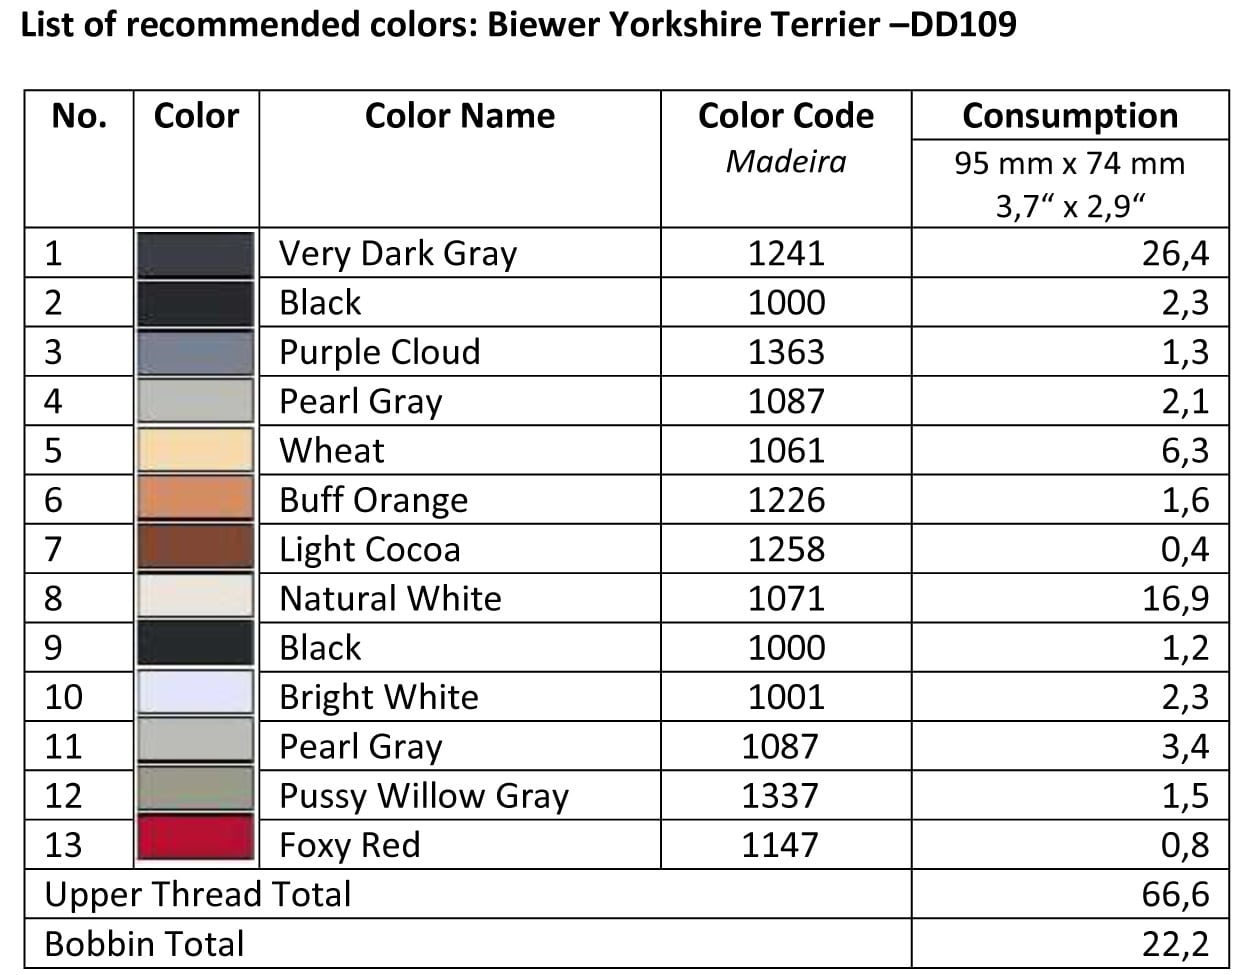 List of Recommended Colors - Biewer Yorkshire Terrier DD109